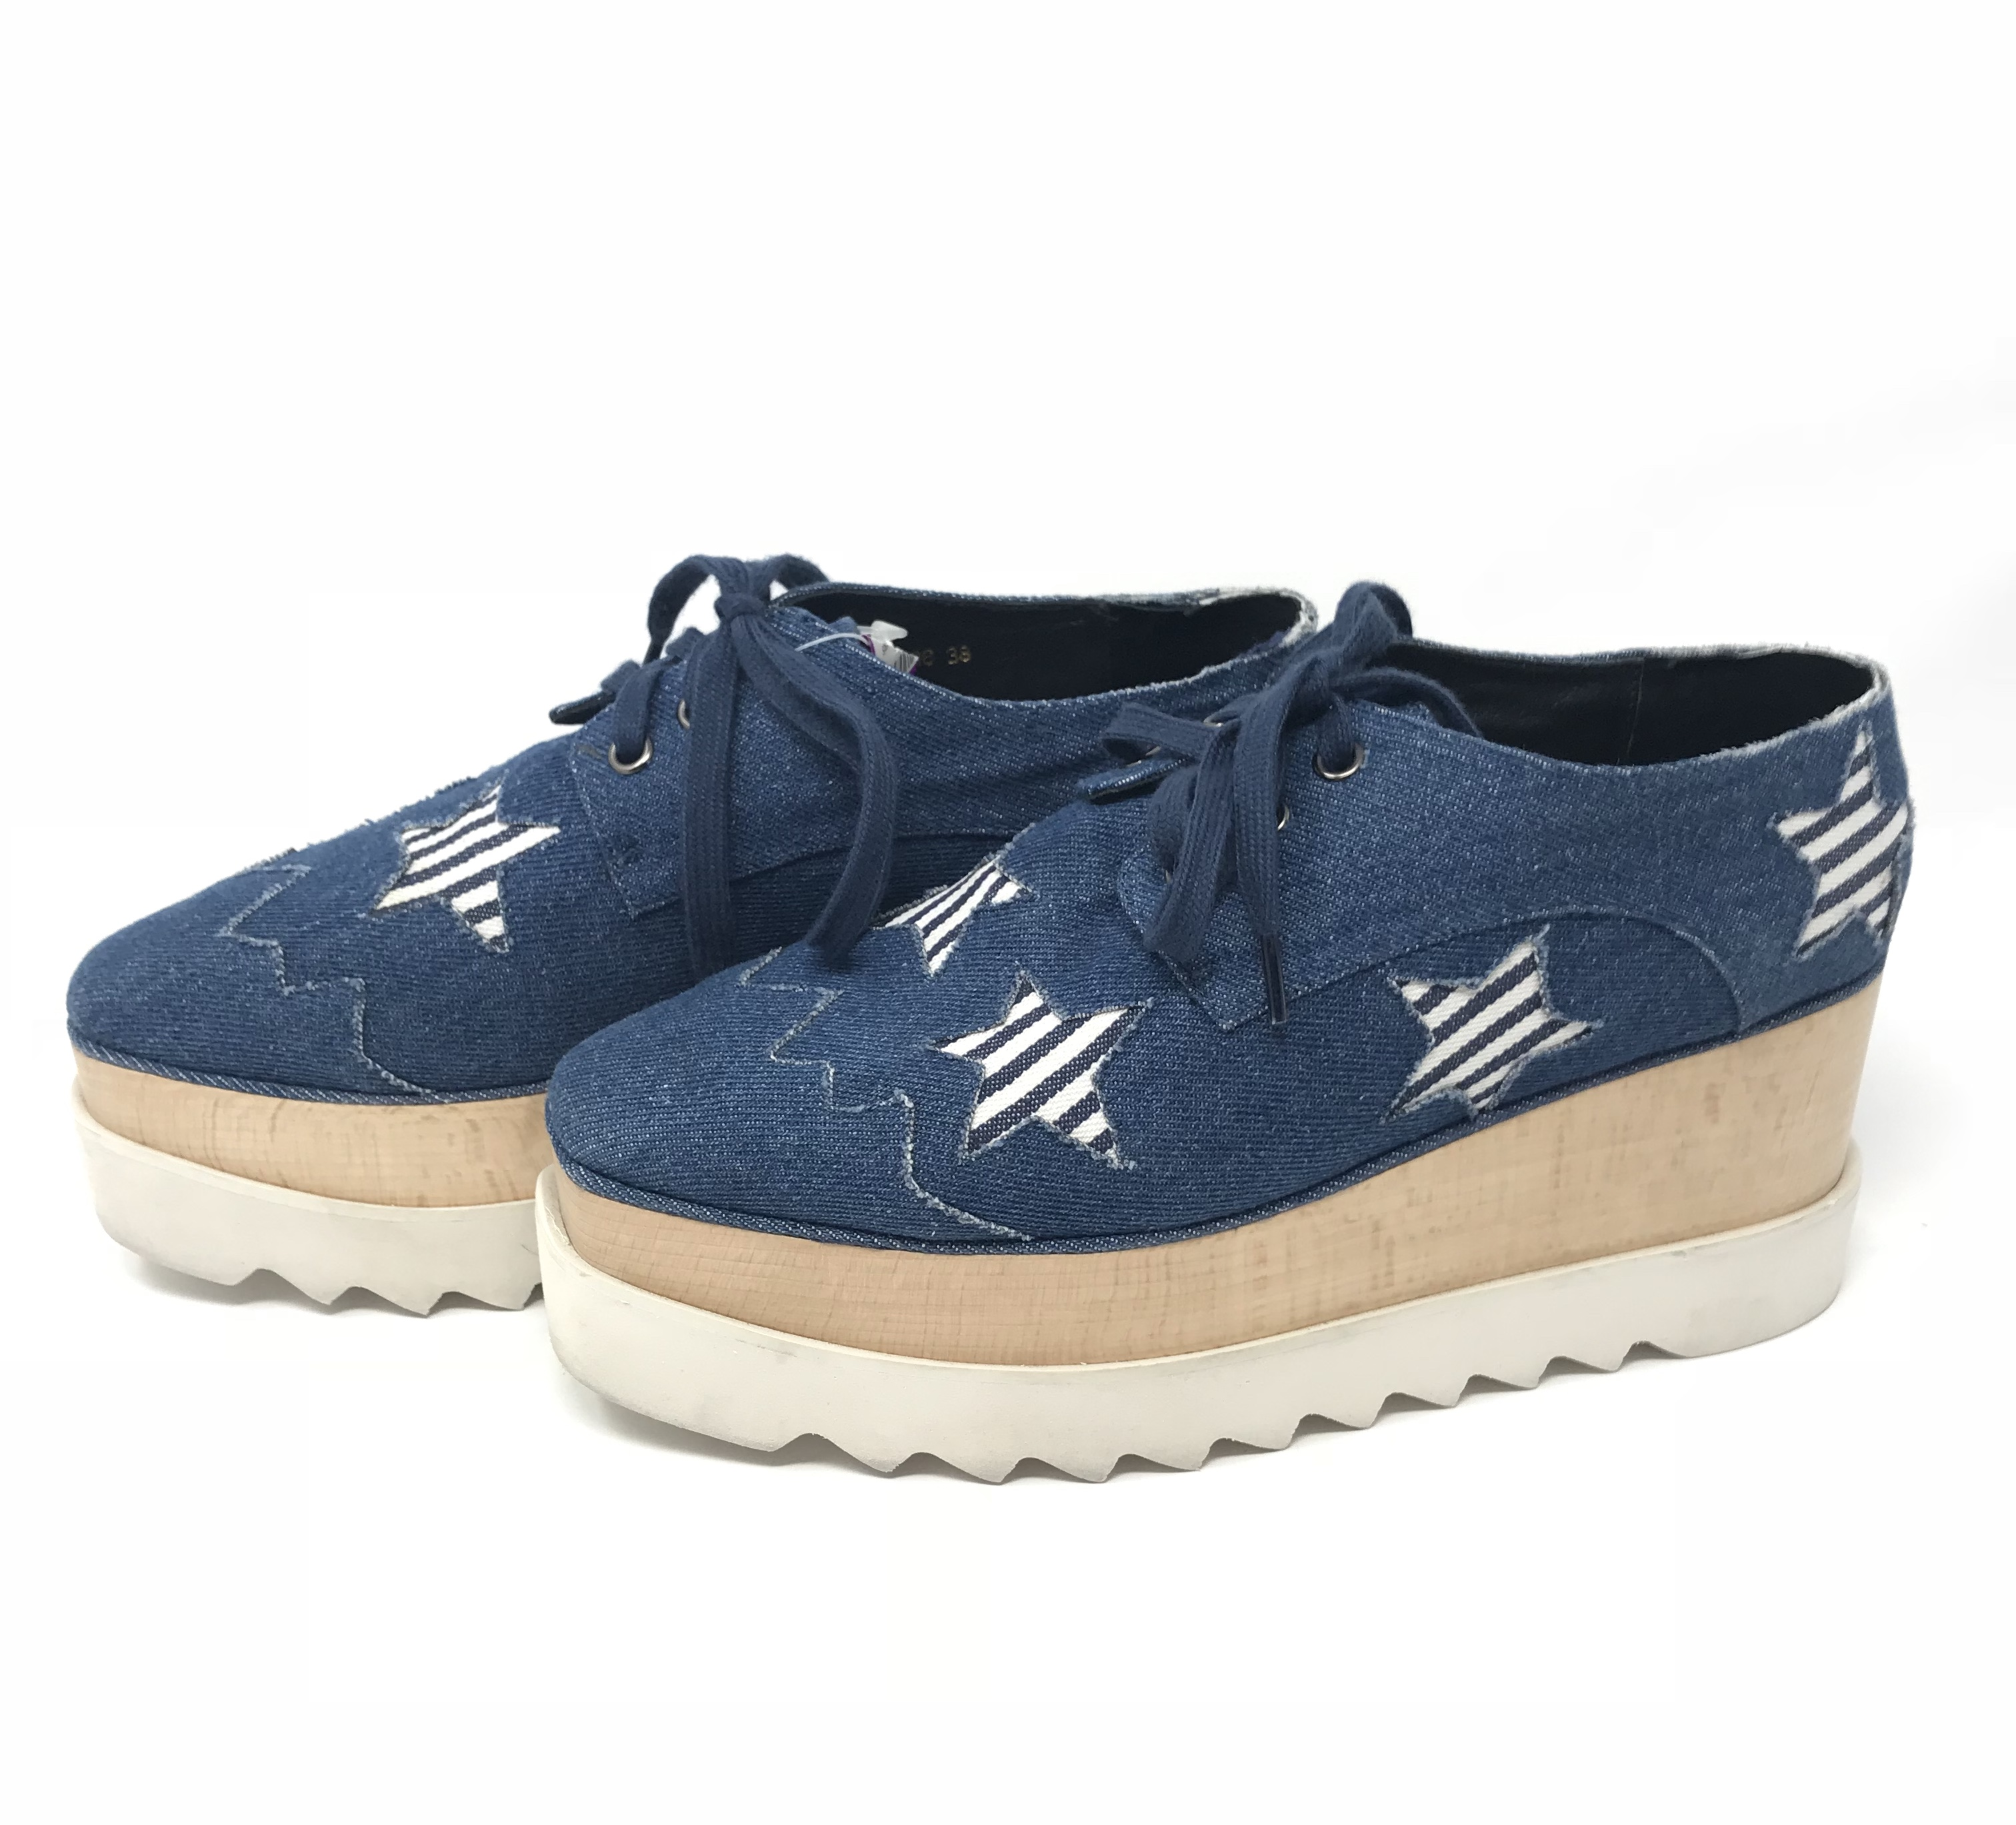 Stella McCartney platform Shoes Price: $267.99